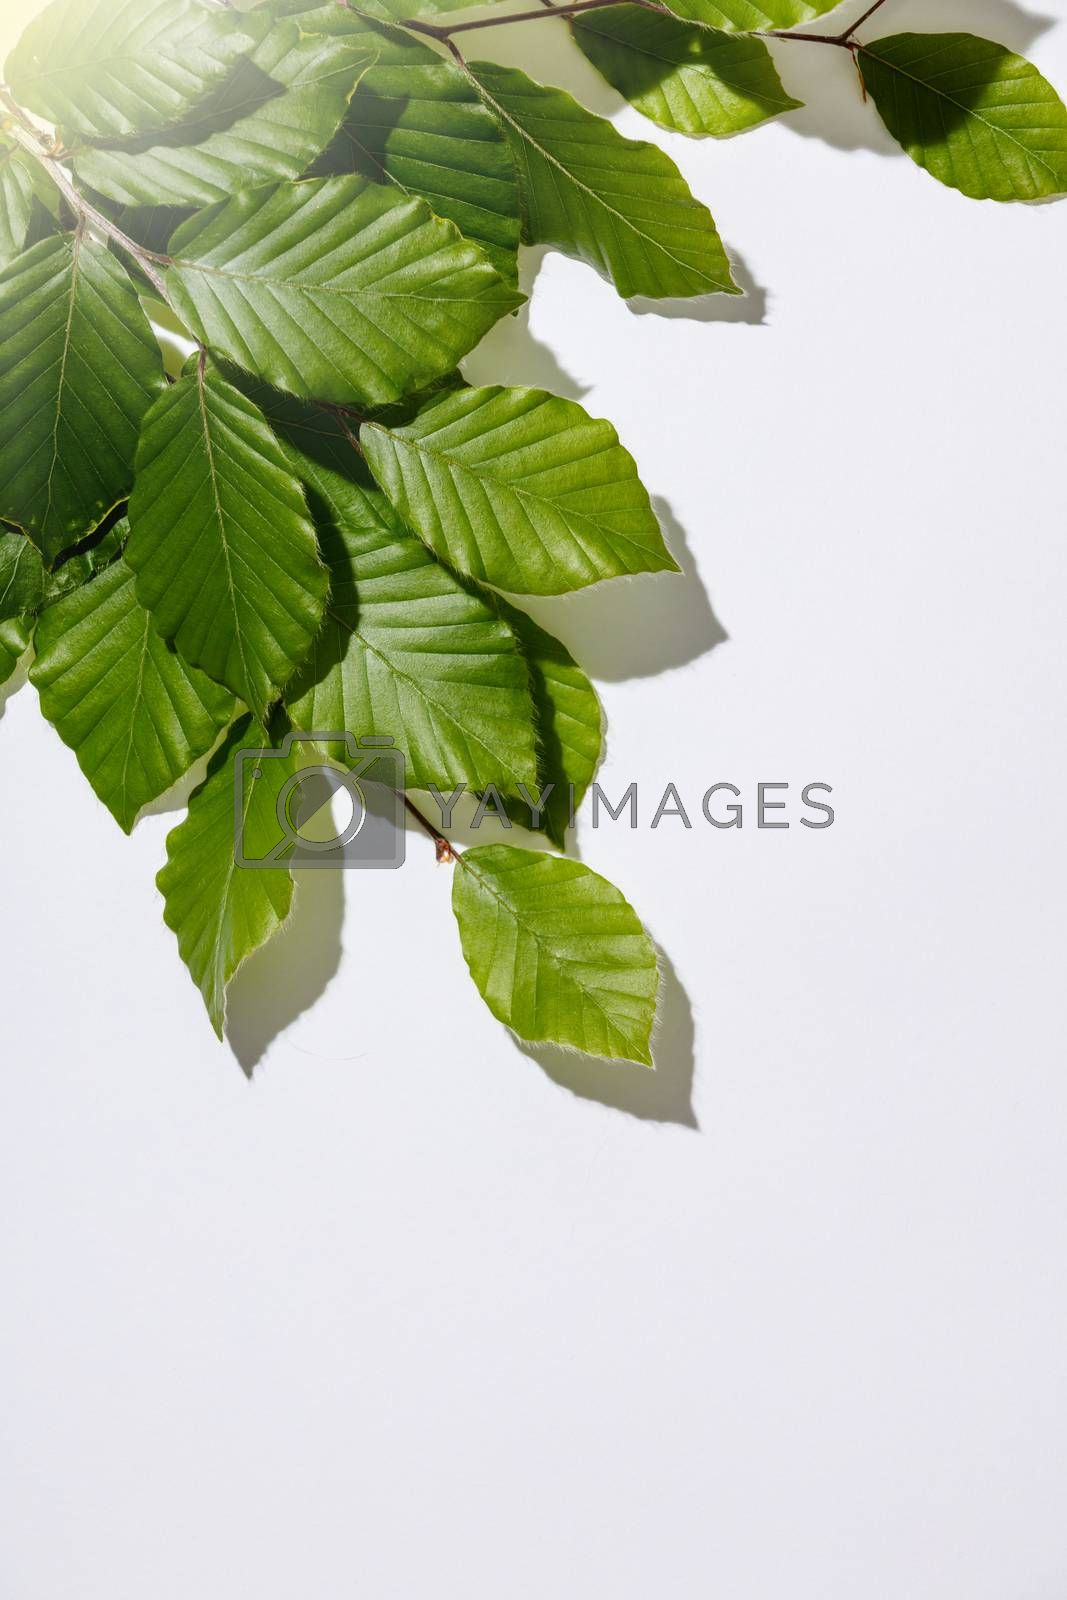 Tree branch with fresh leaves on white backgrount, flat lay, top view